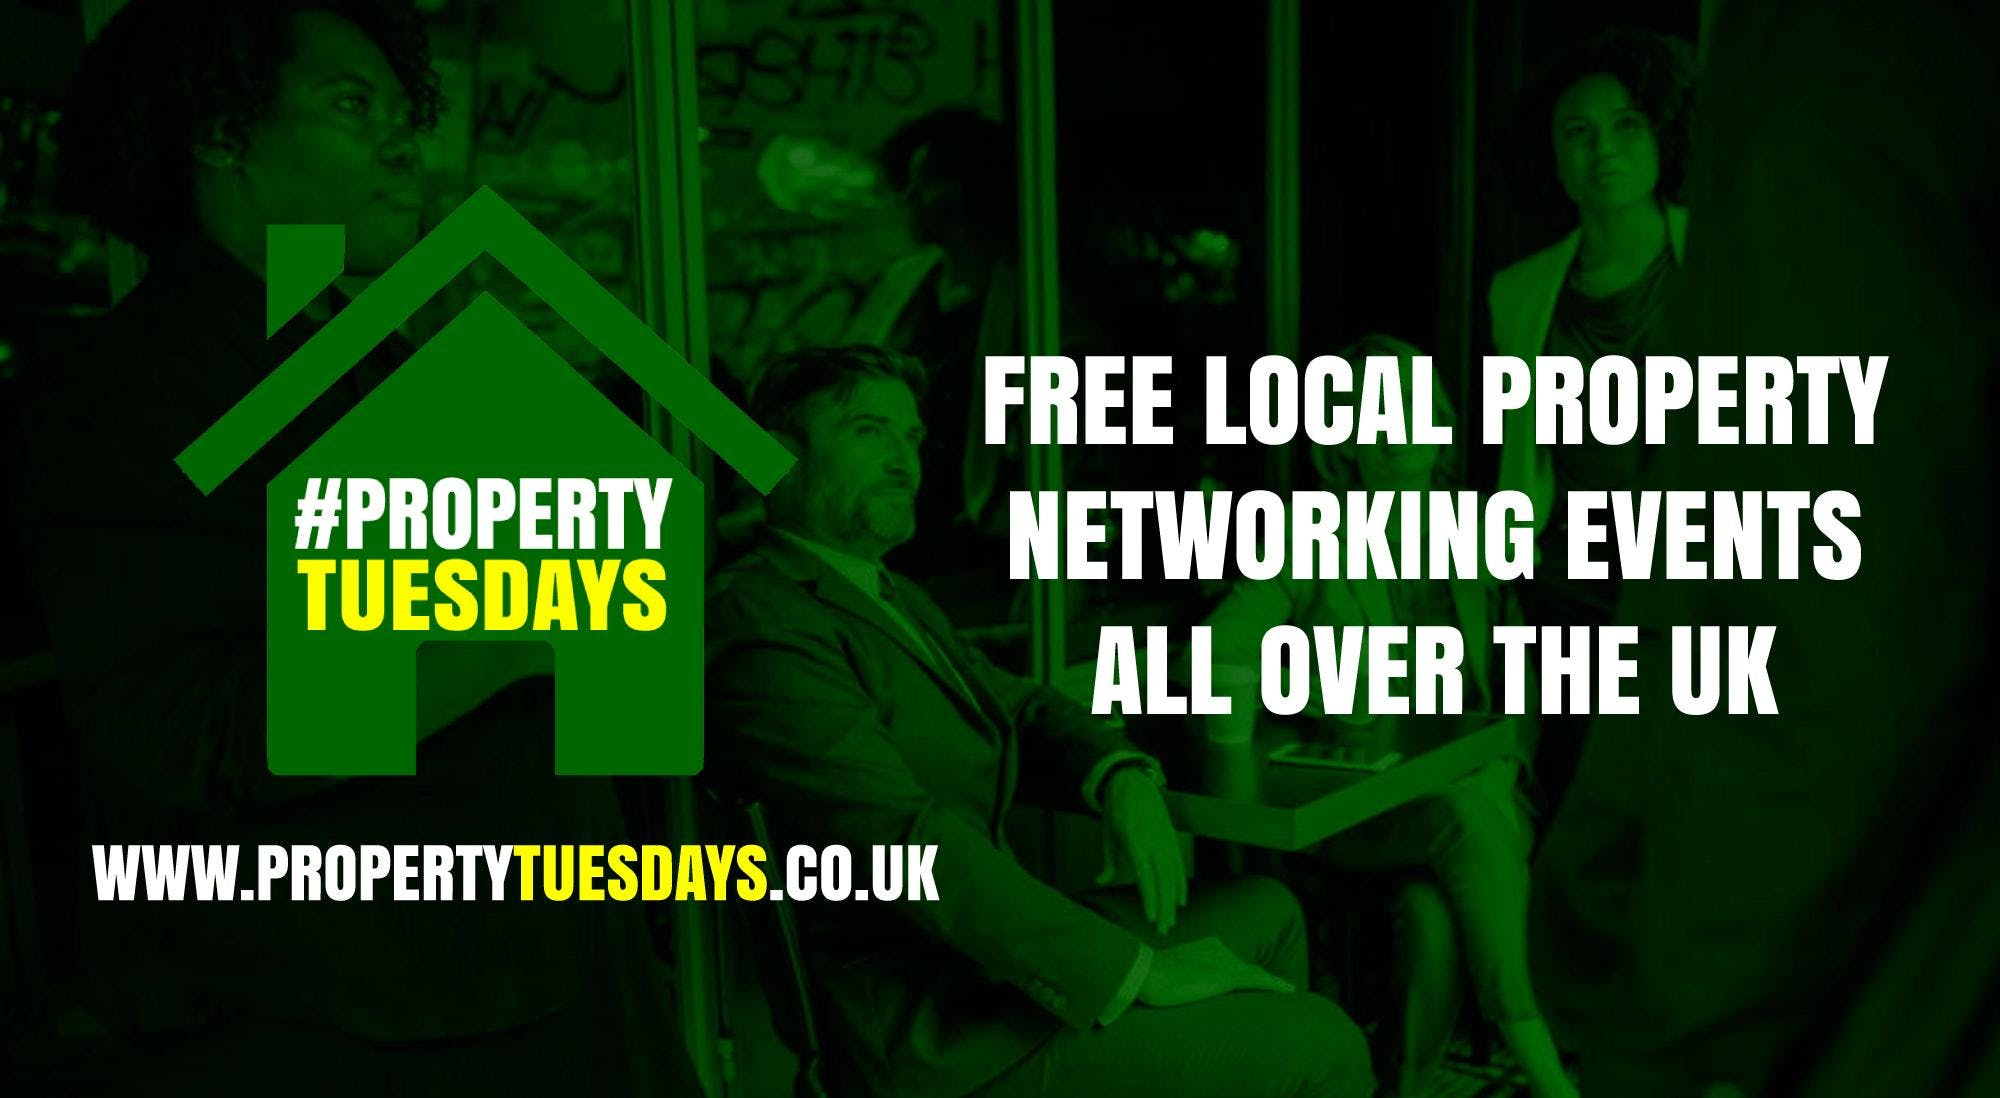 Property Tuesdays! Free property networking event in Prescot